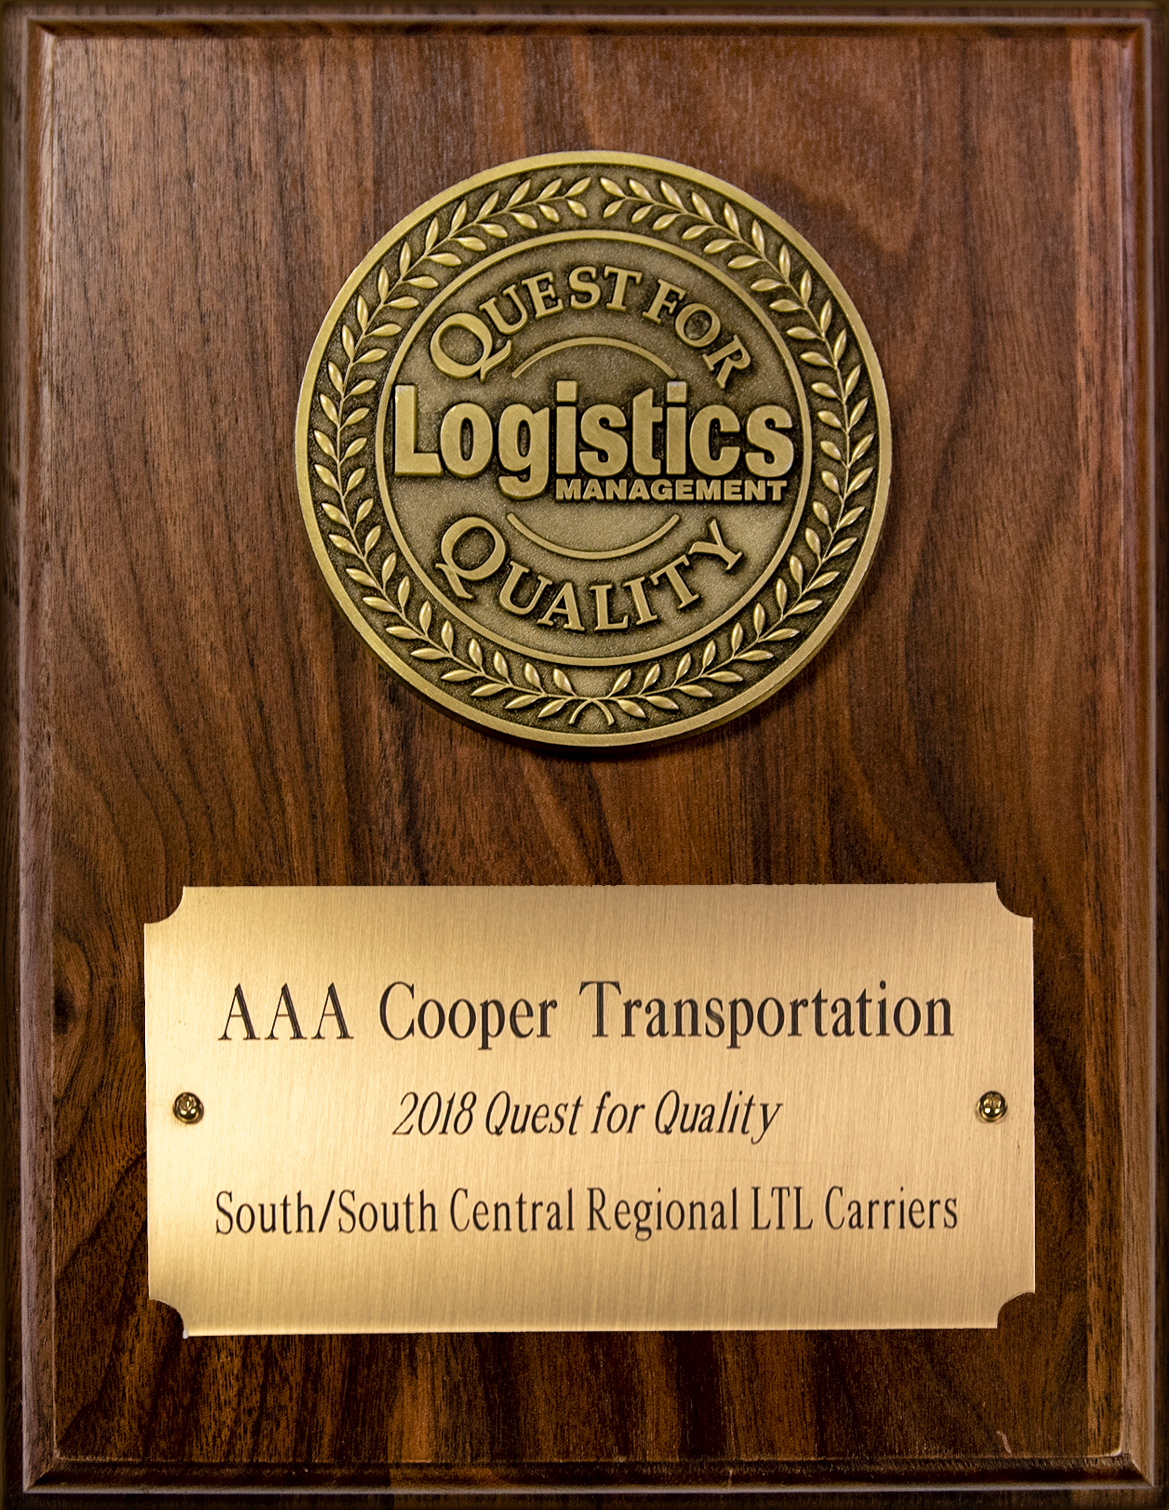 2018 Quest For Quality award in the South/South Central regional LTL carriers category